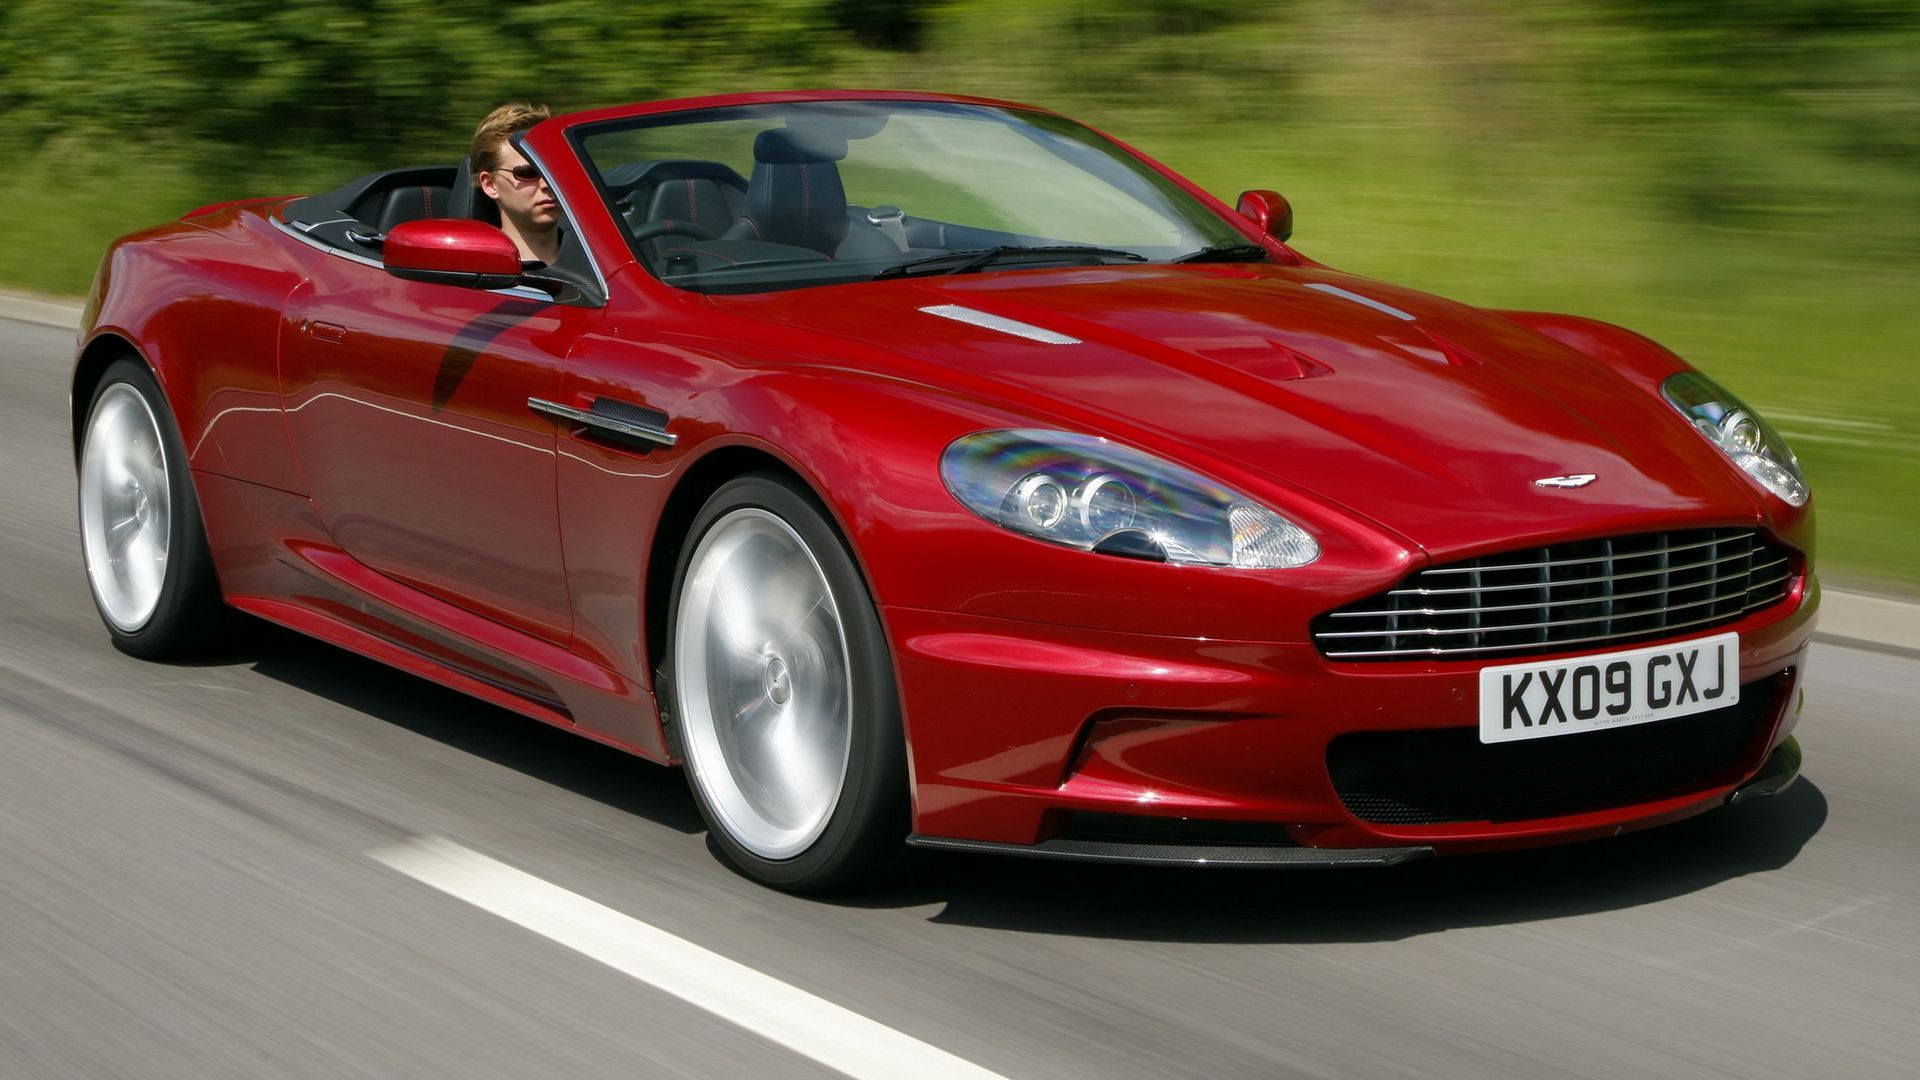 Wallpaper Aston Martin Cars Trees Side View 2009 Red Speed Dbs Aston Martin Cars Aston Martin Aston